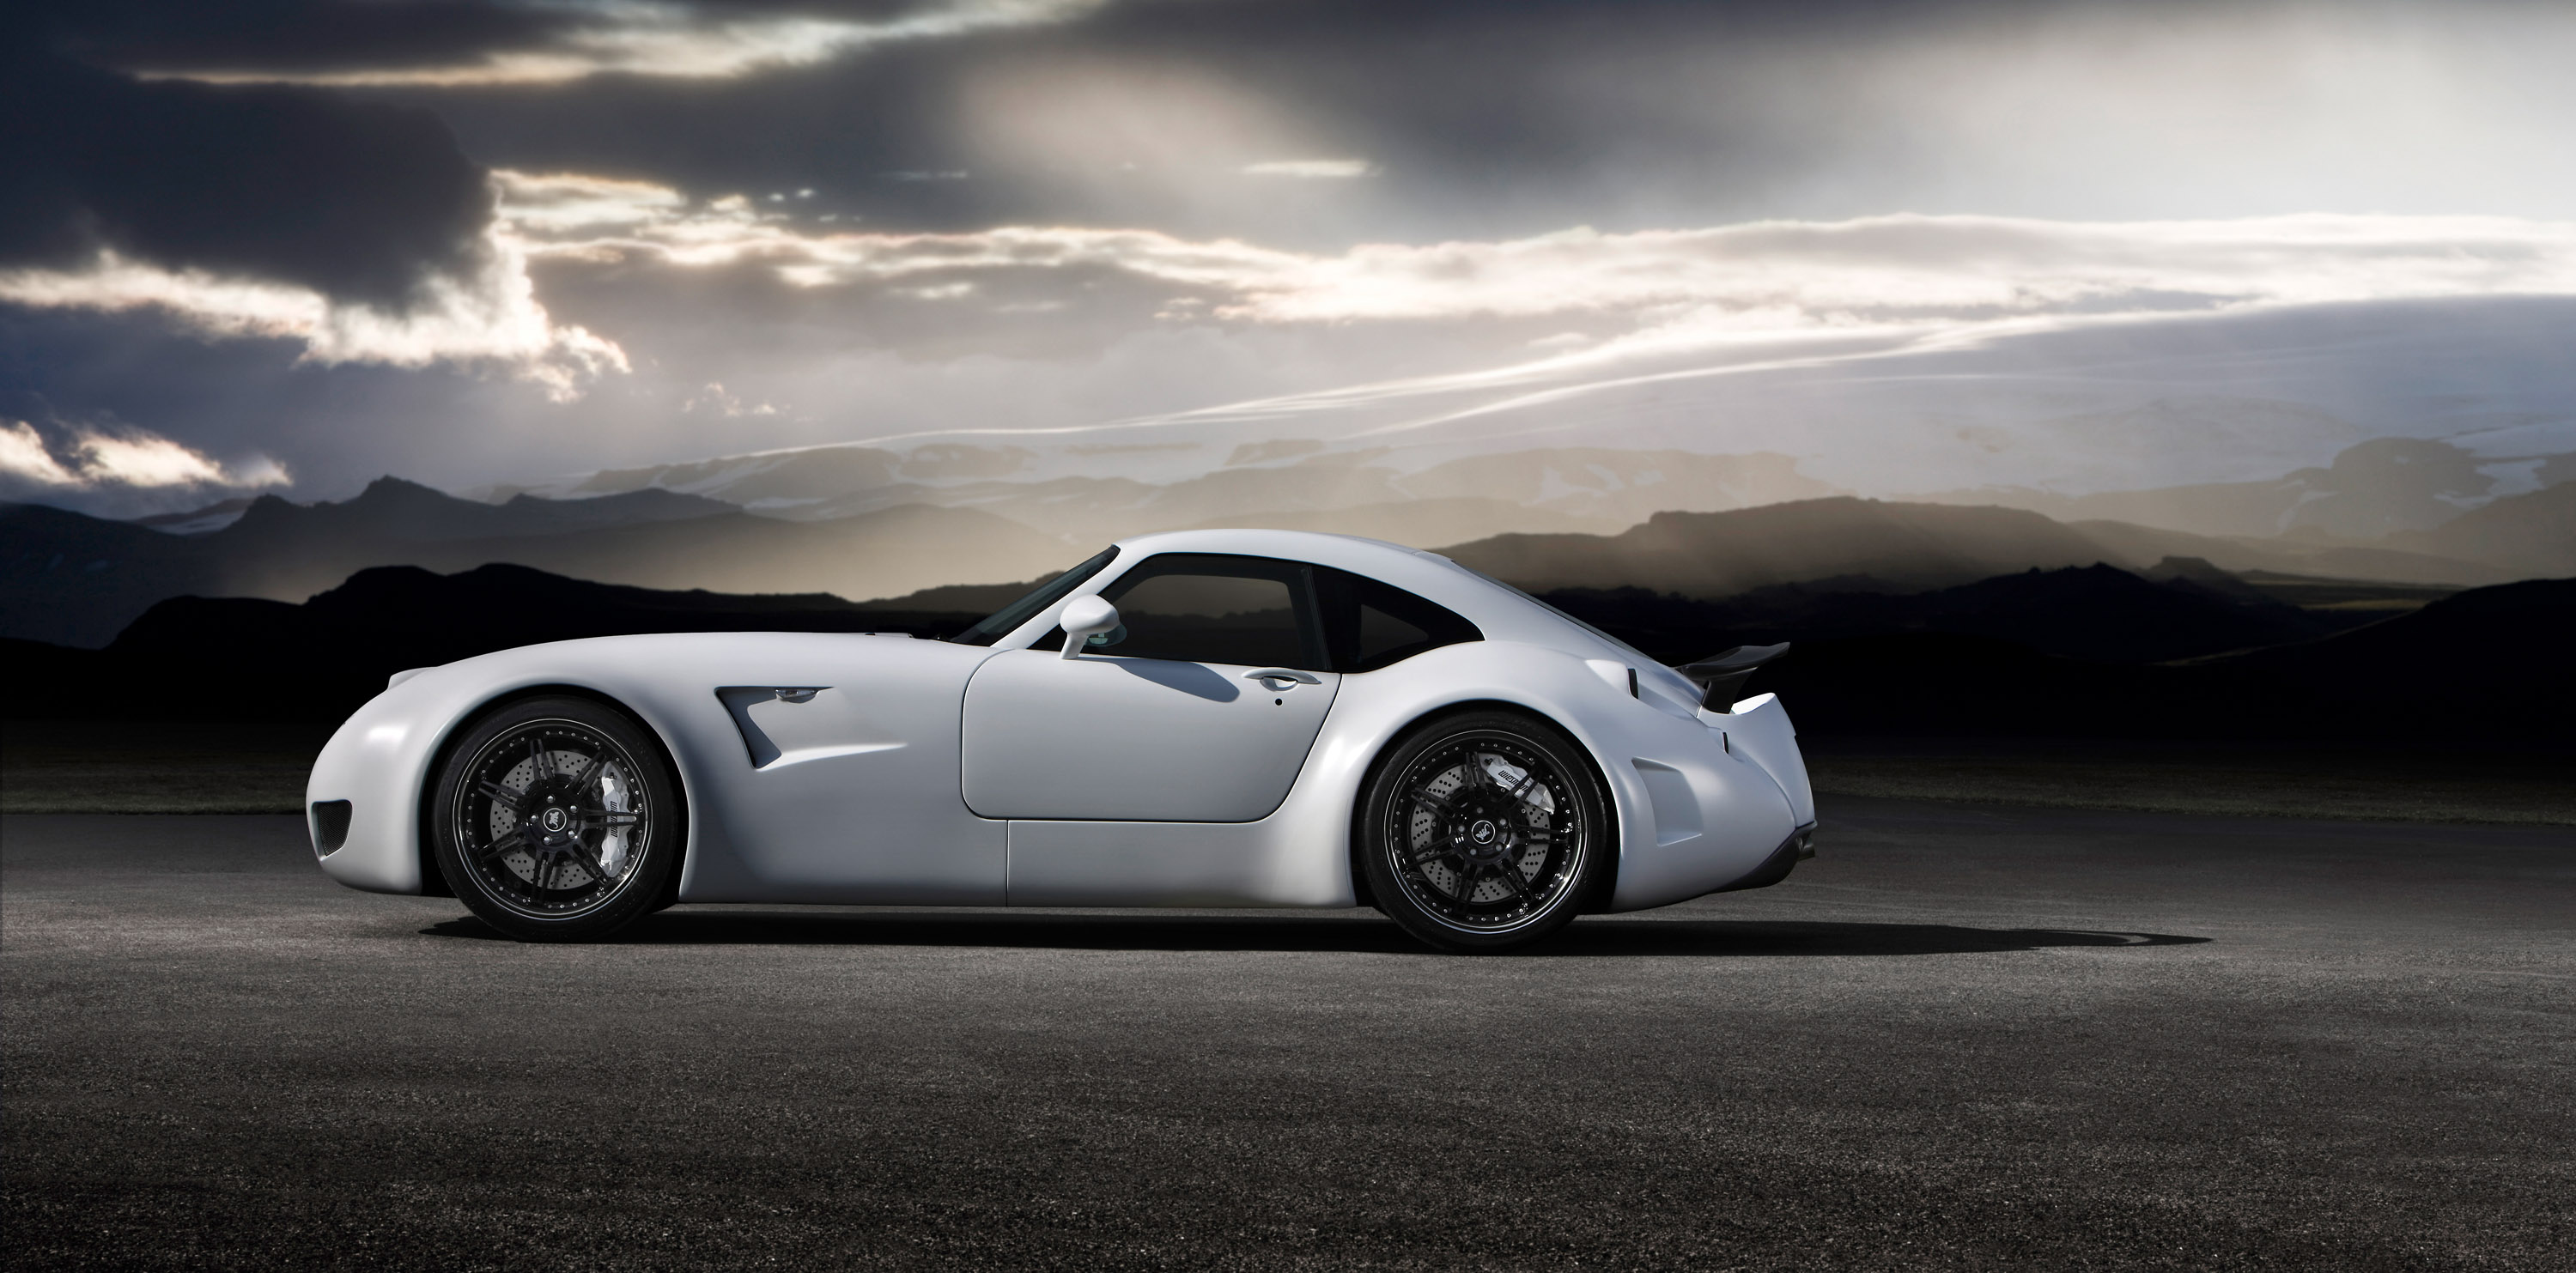 Wiesmann Gt Mf5 A Senational Lap Fighter